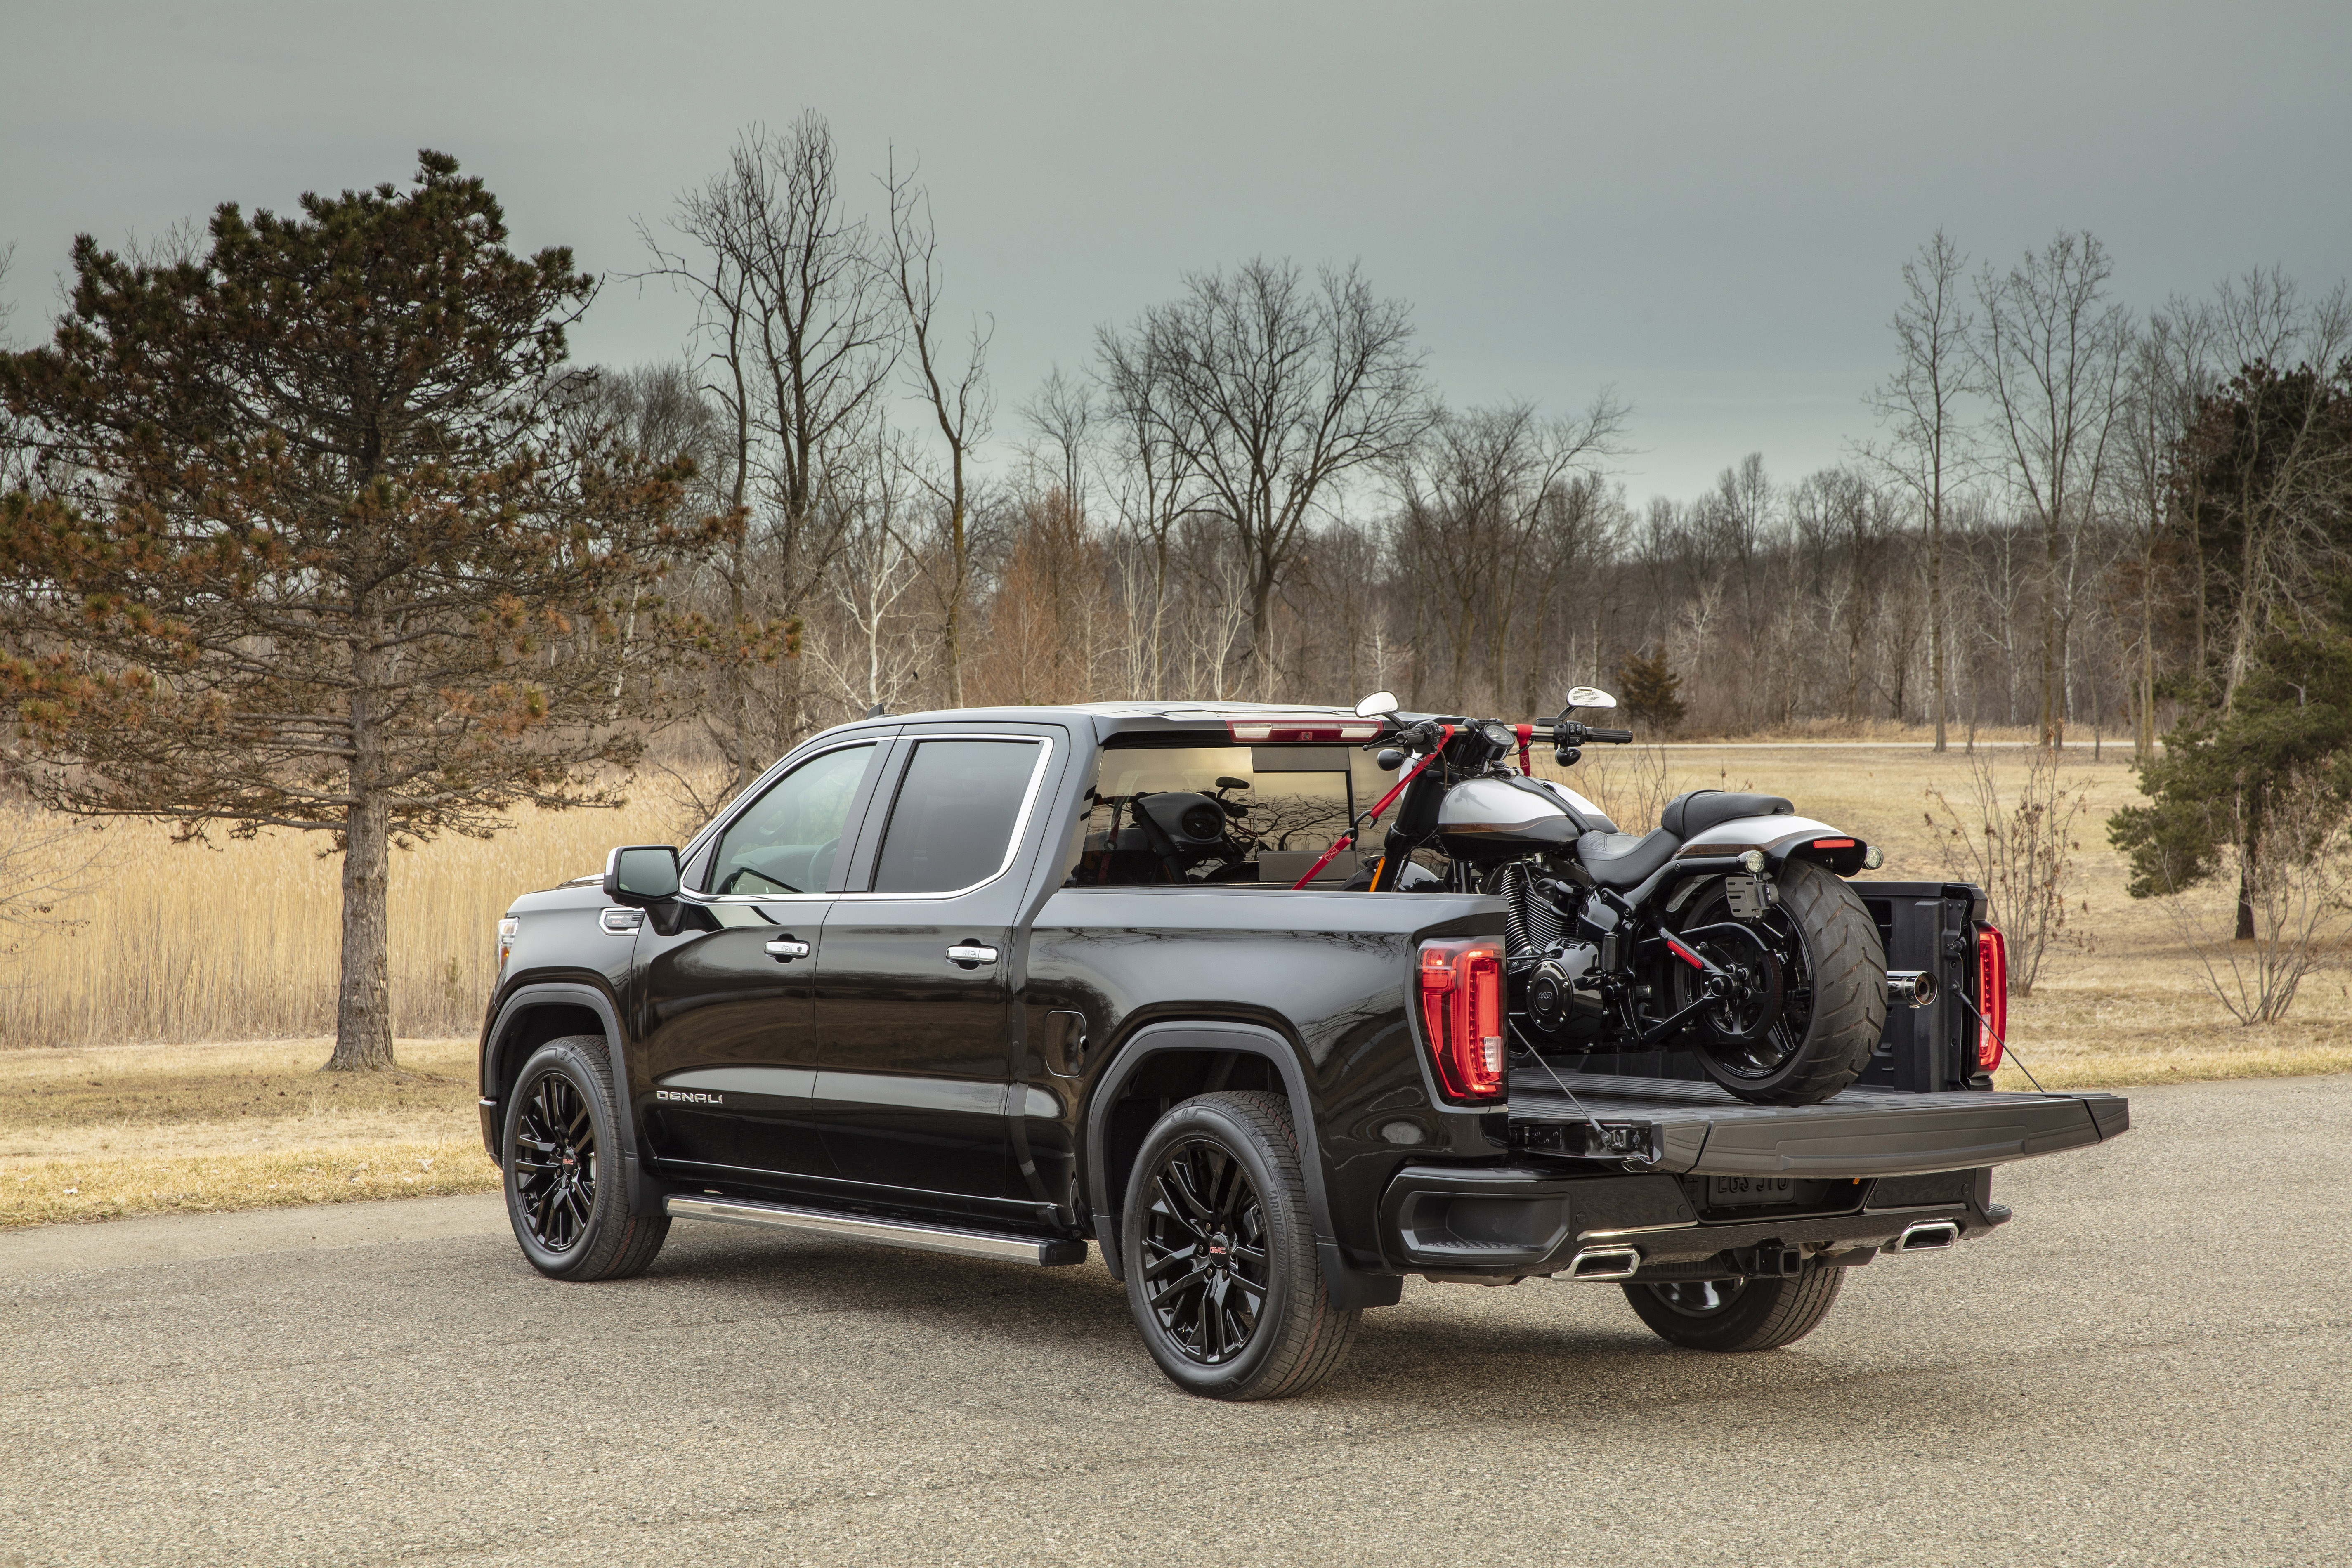 2020 GMC Sierra 1500 Specs and Review